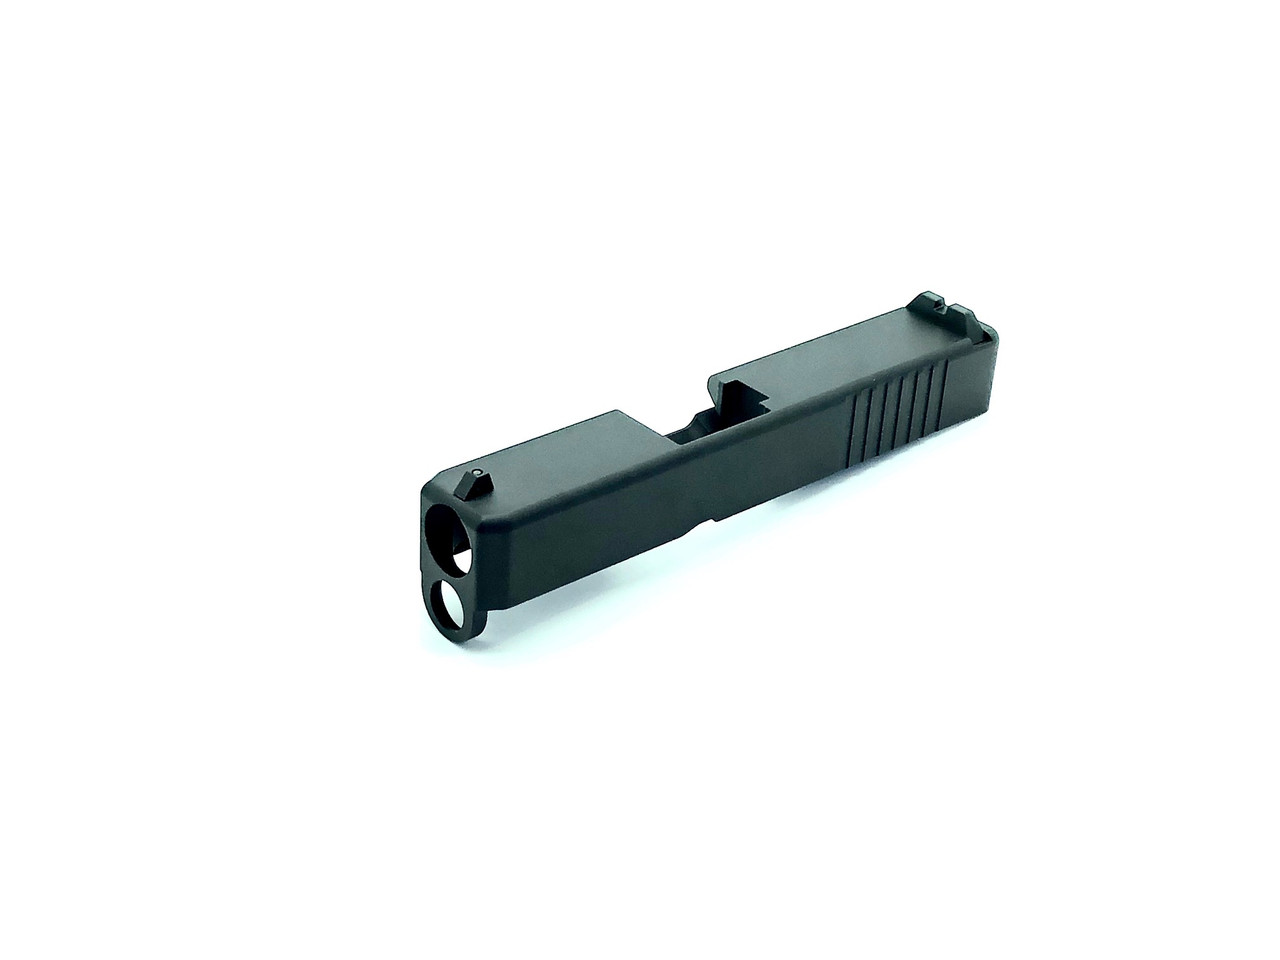 MDX Arms V1 Stripped Slides - G27 BLK 1